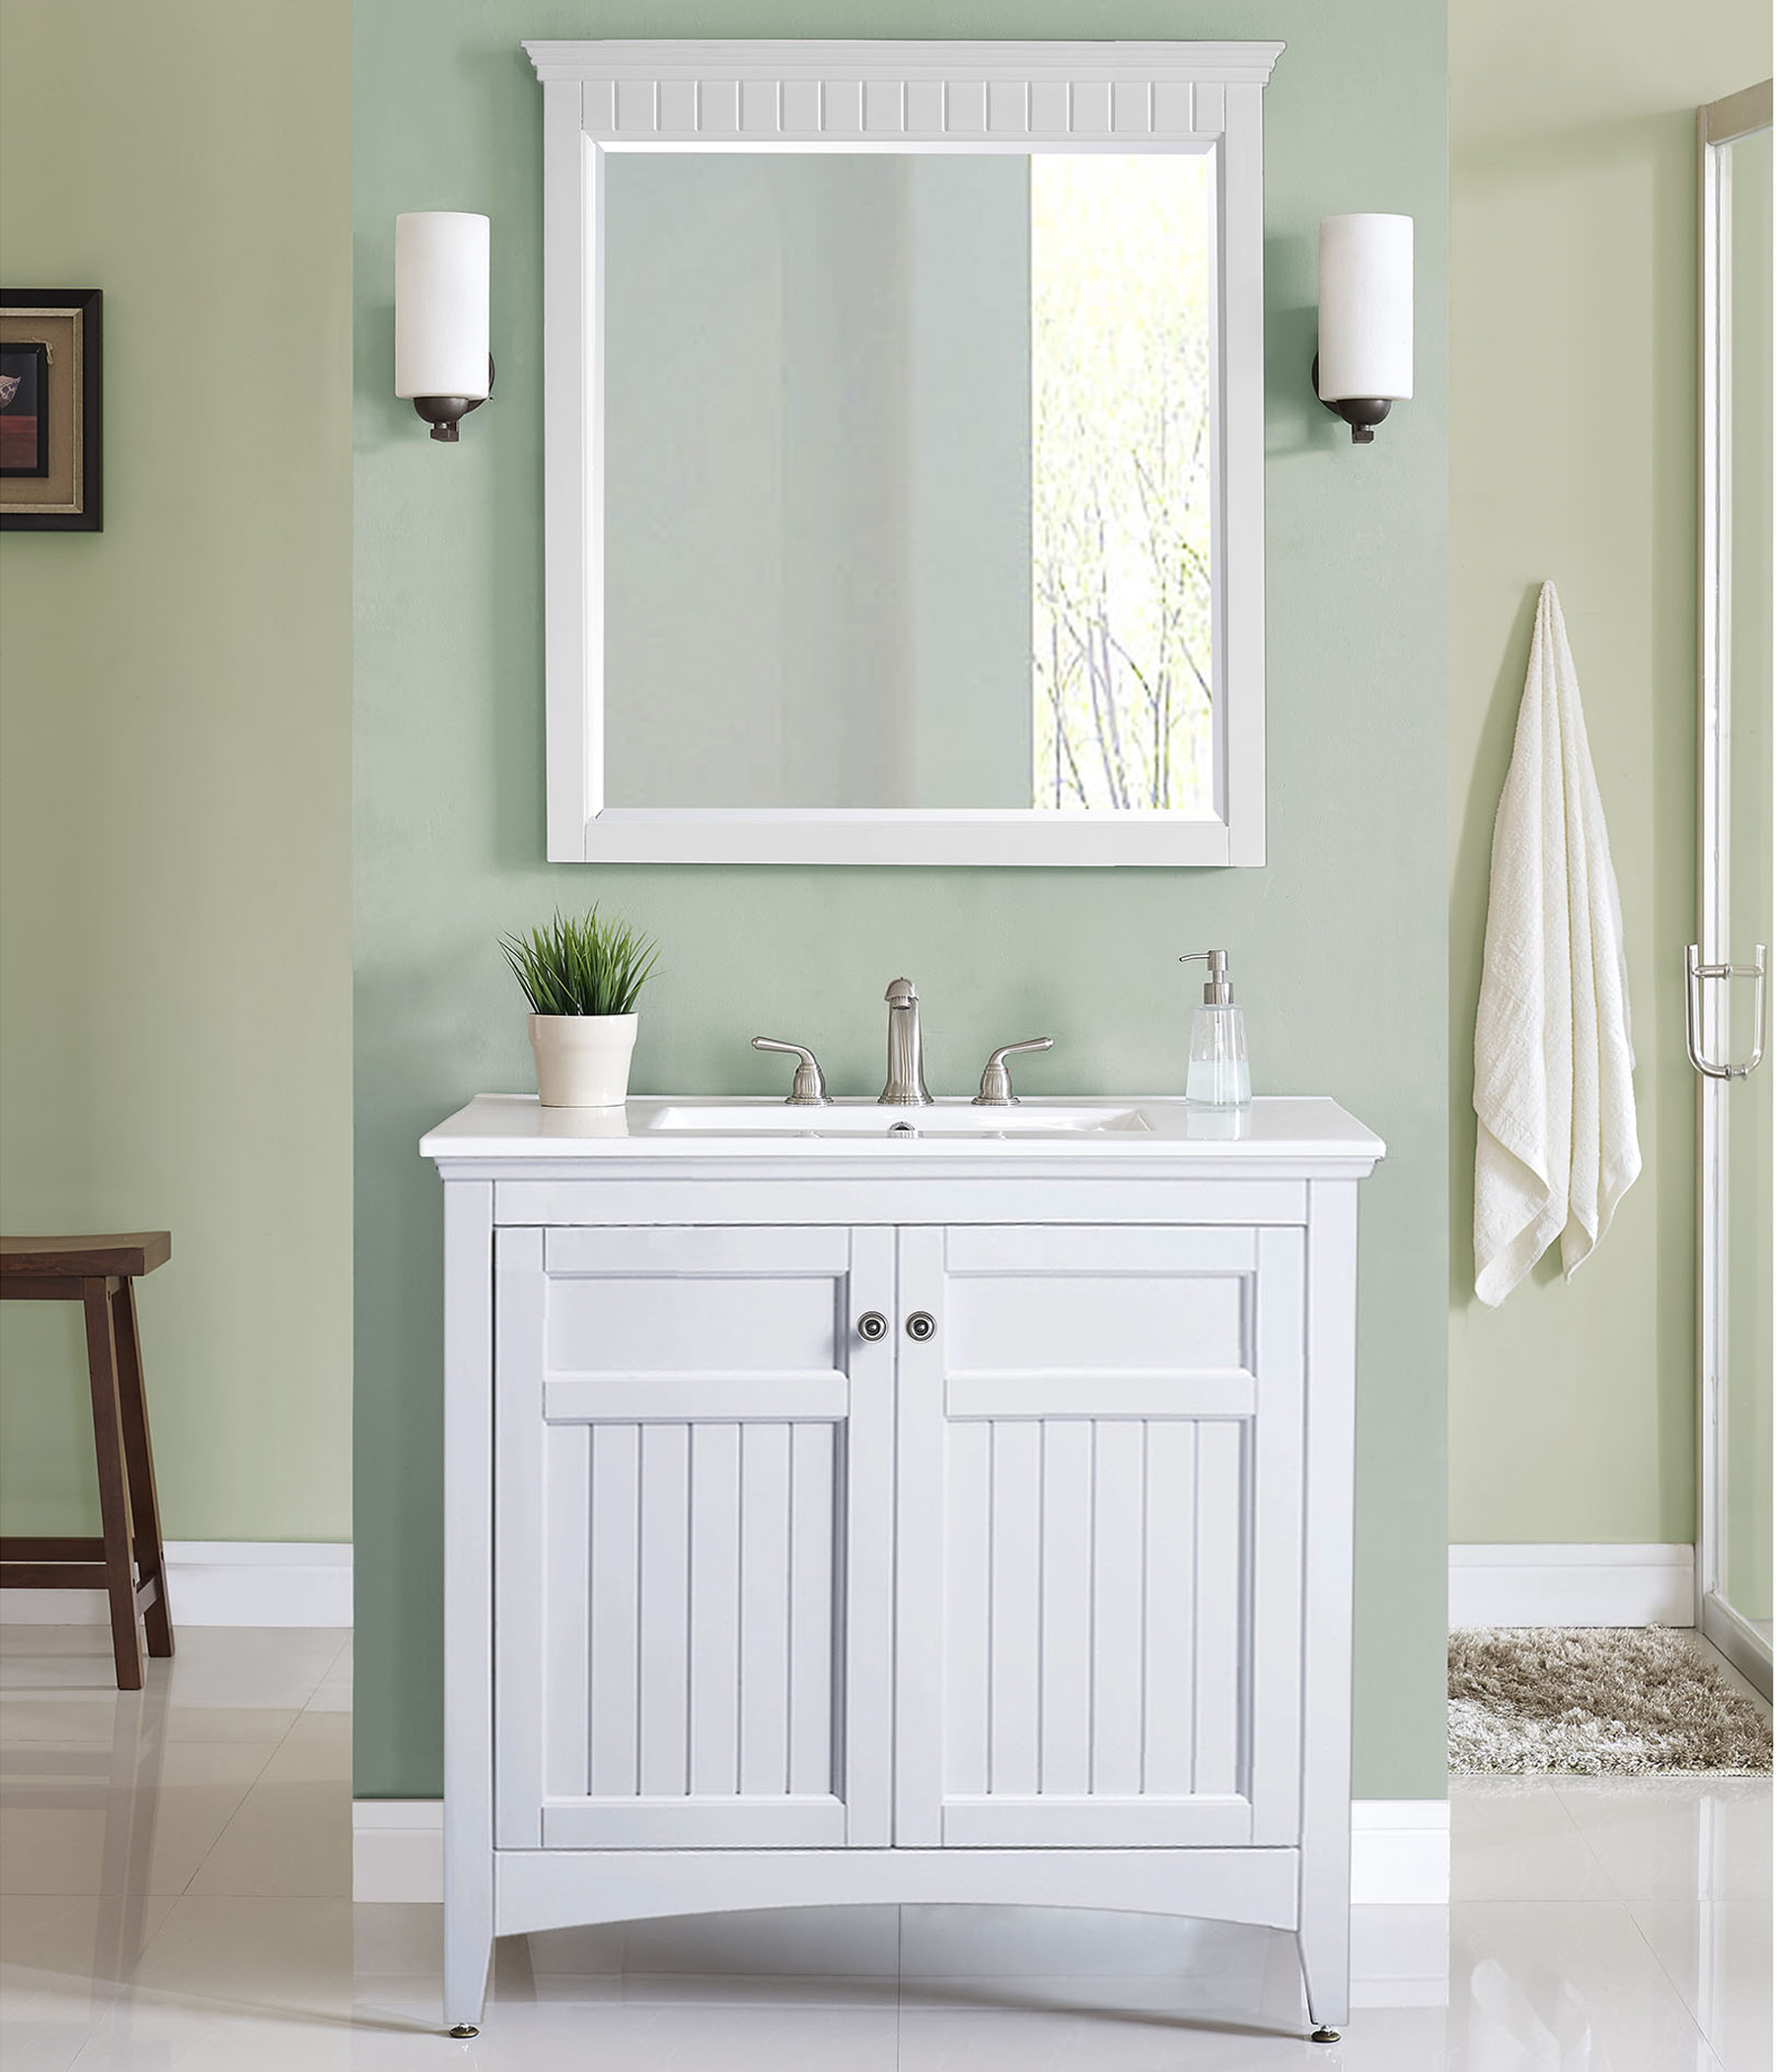 """36"""" Transitional Bathroom Vanity - White Finish with Counter Top and Mirror Options"""